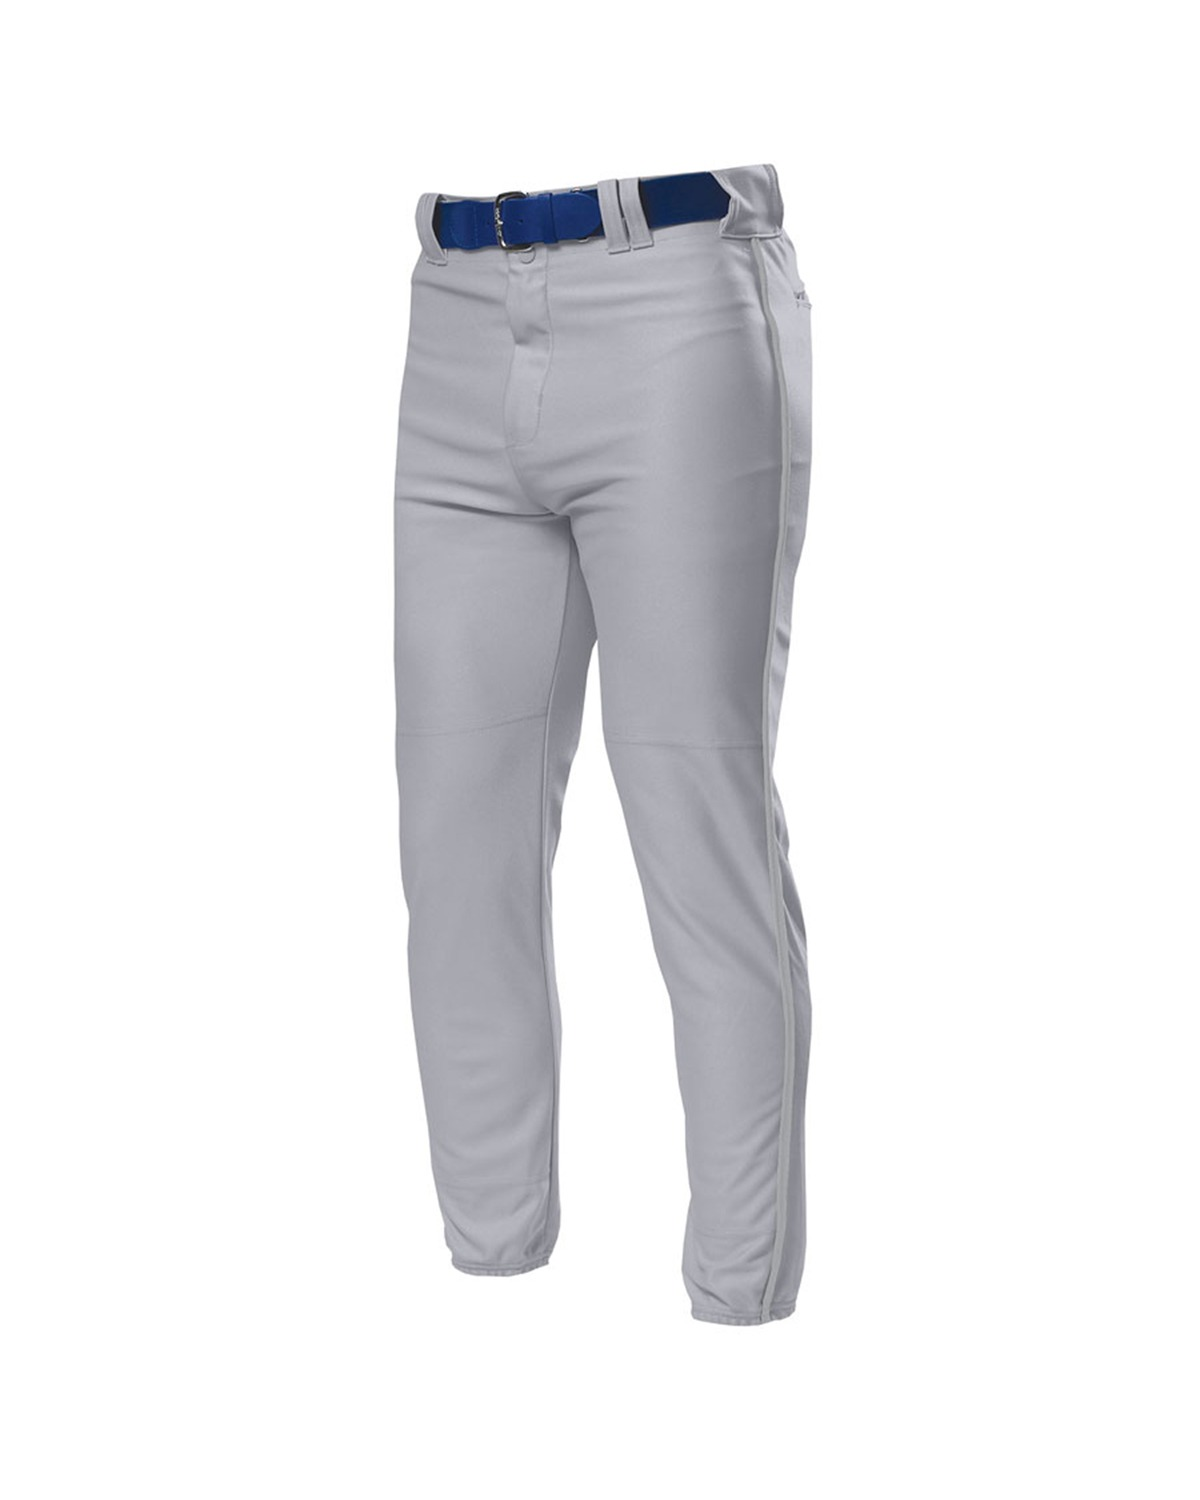 A4 Drop Ship - NB6178  Youth Pro Style Elastic Bottom ...